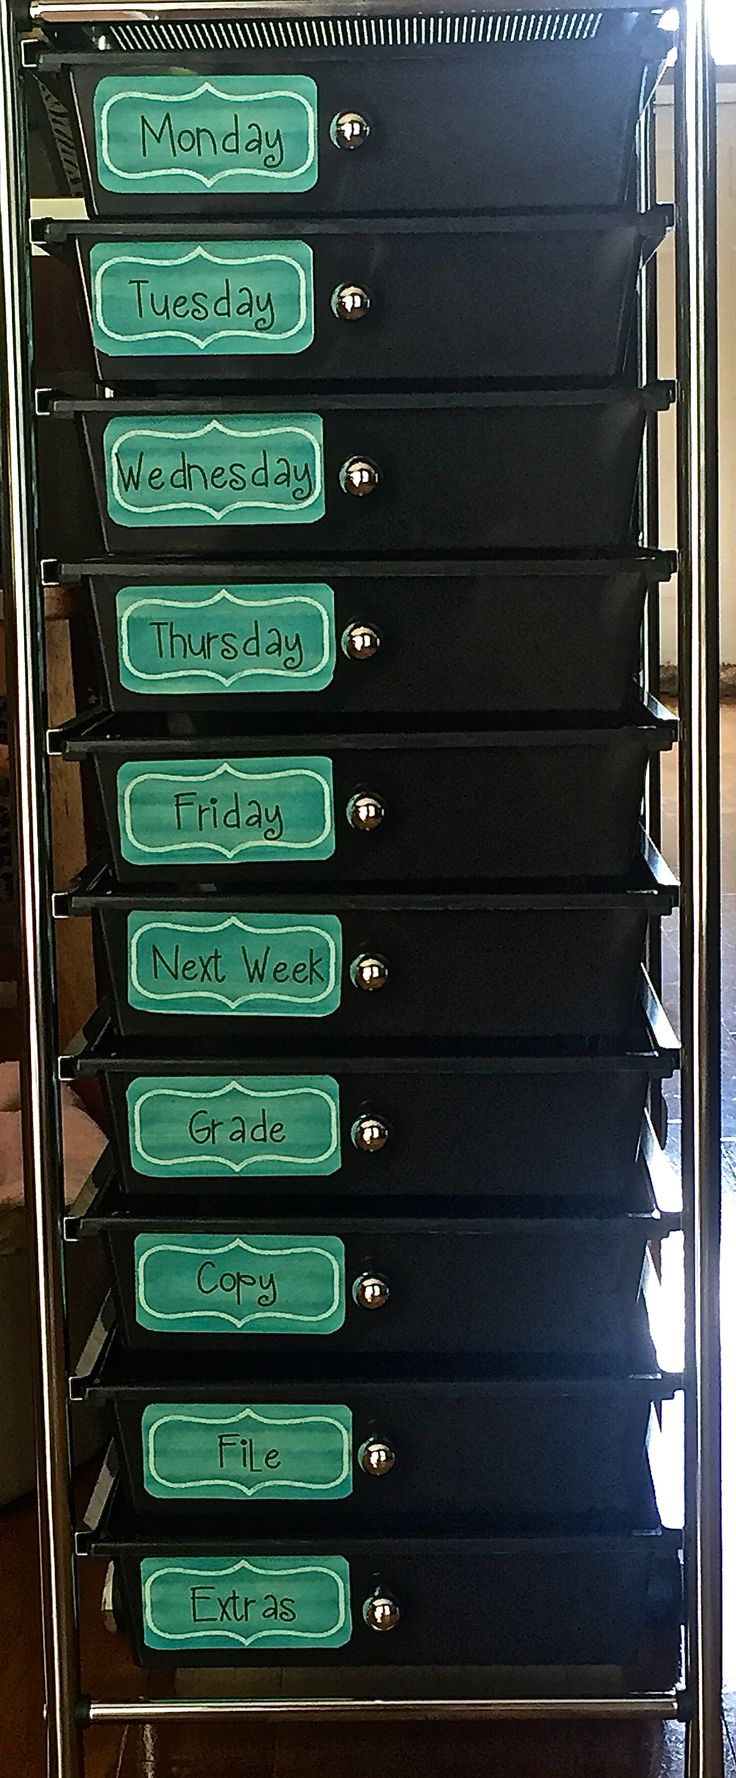 Drawers from Target. I made labels from School Girl Style to stay organized. Labels are: Monday, Tuesday, Wednesday, Thursday, Friday, Next Week, Grade, Copy, File, and Extras!